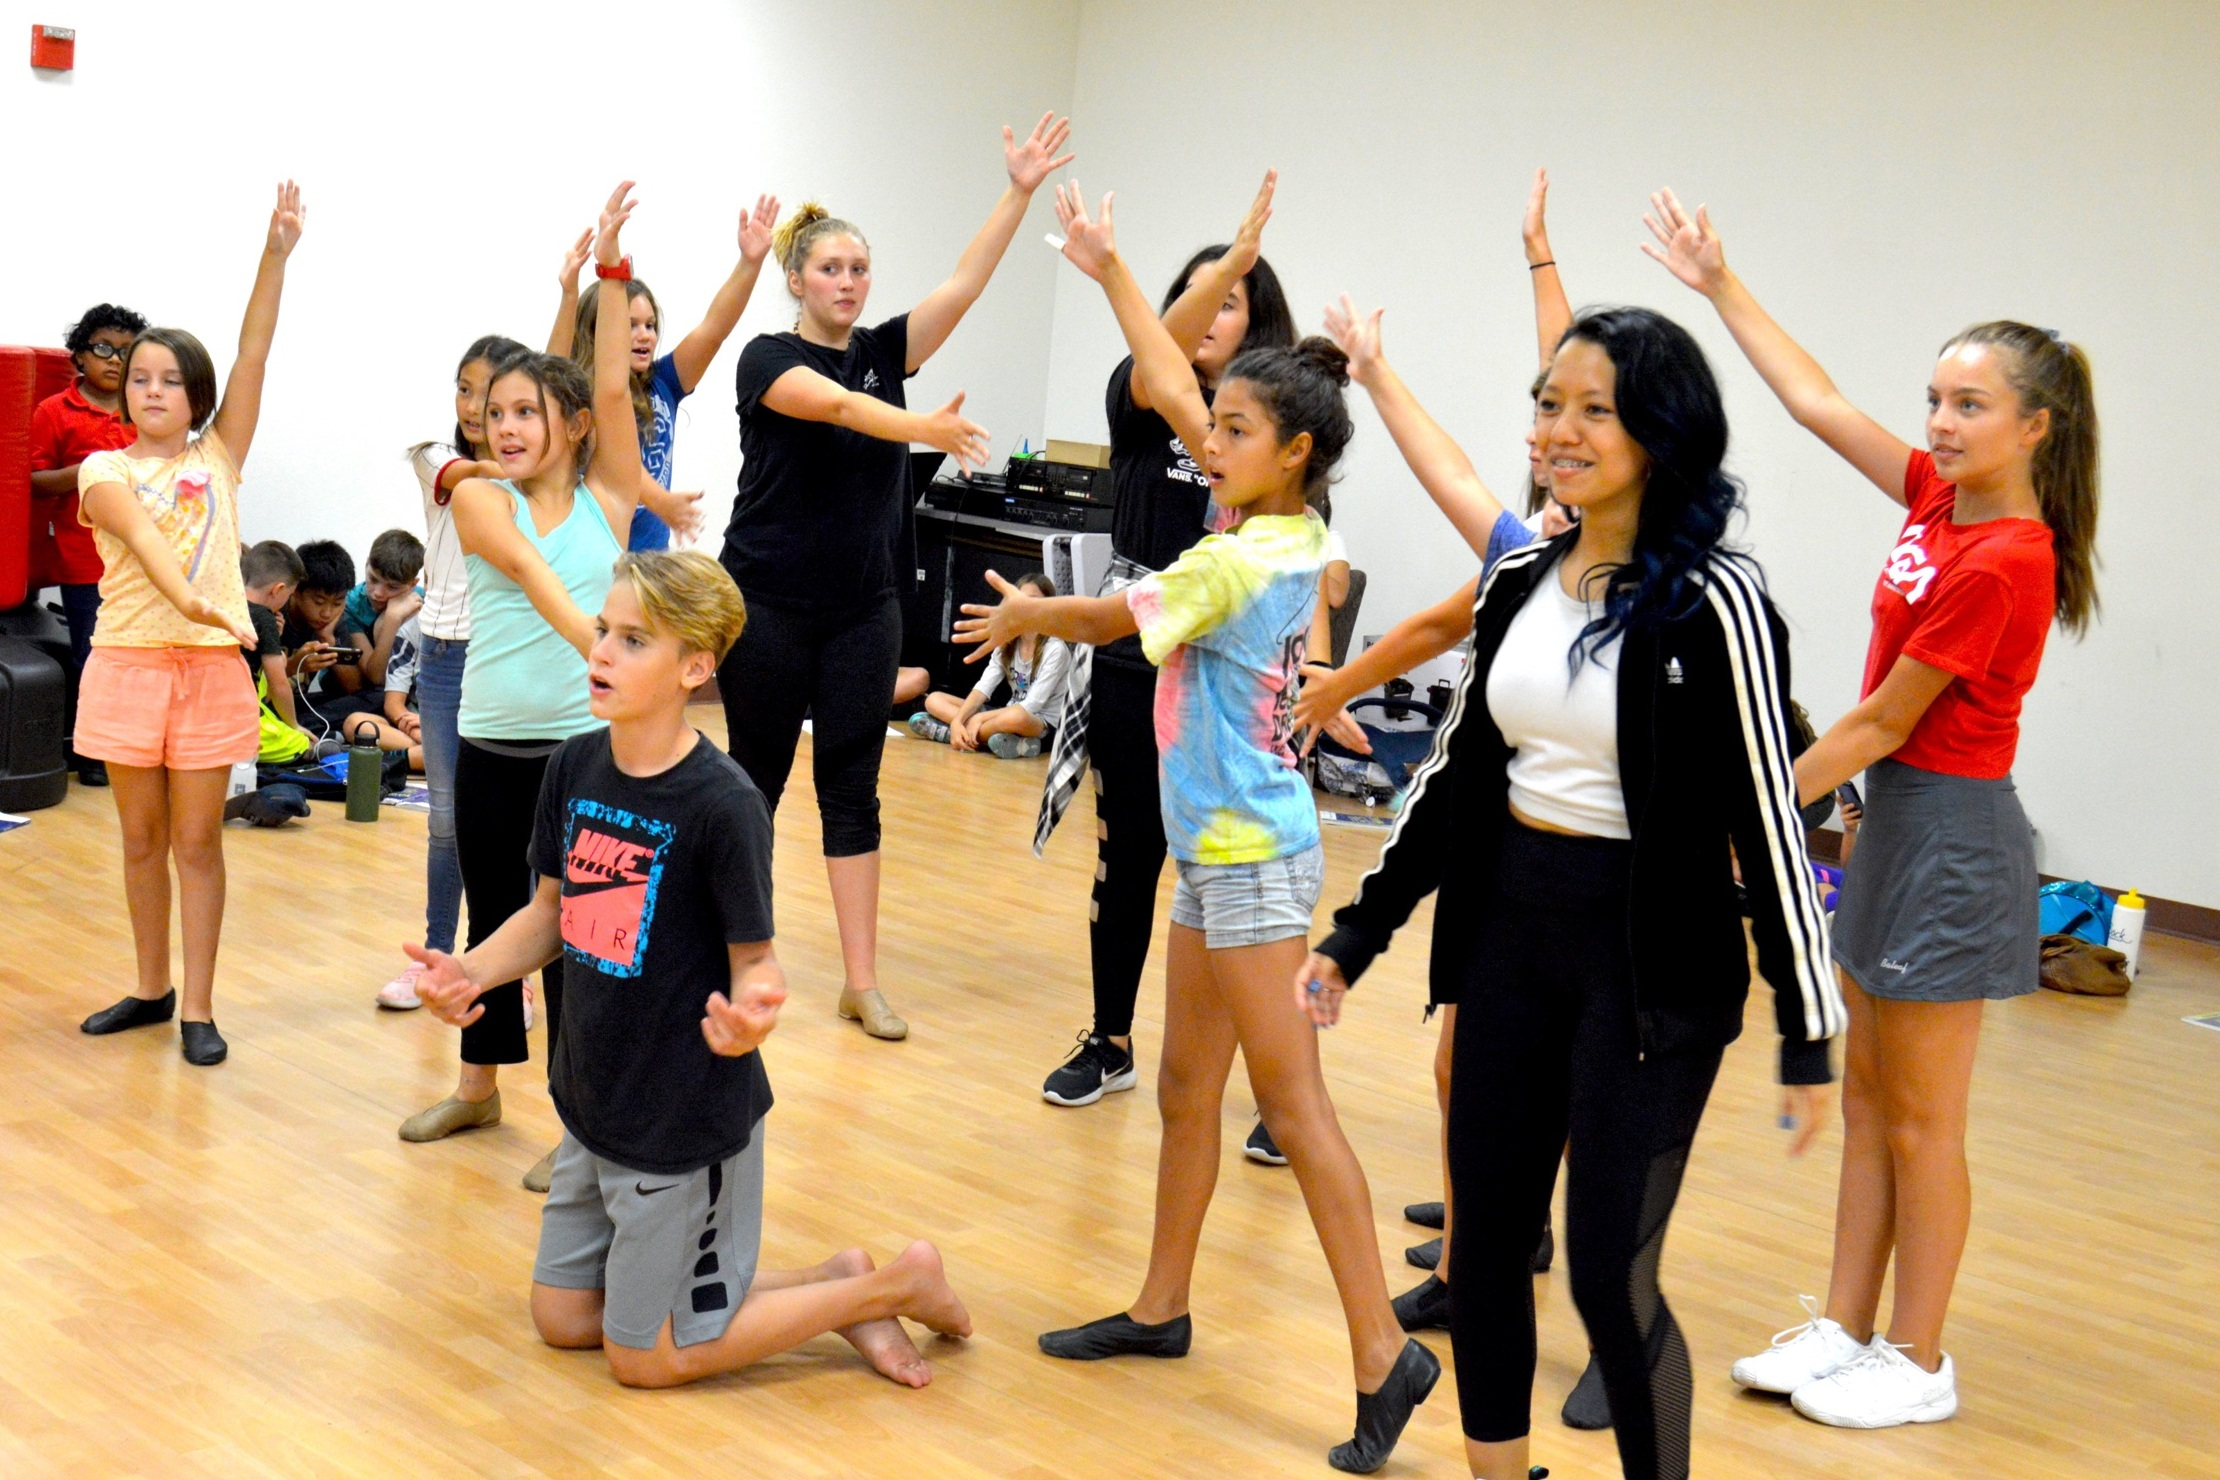 Creative Potential - Helping participants grow in their creative potential through arts education (teaching skills in dance, acting and singing), cultivating self-confidence both on stage and off, and allowing them to be involved in high-quality, successful productions.